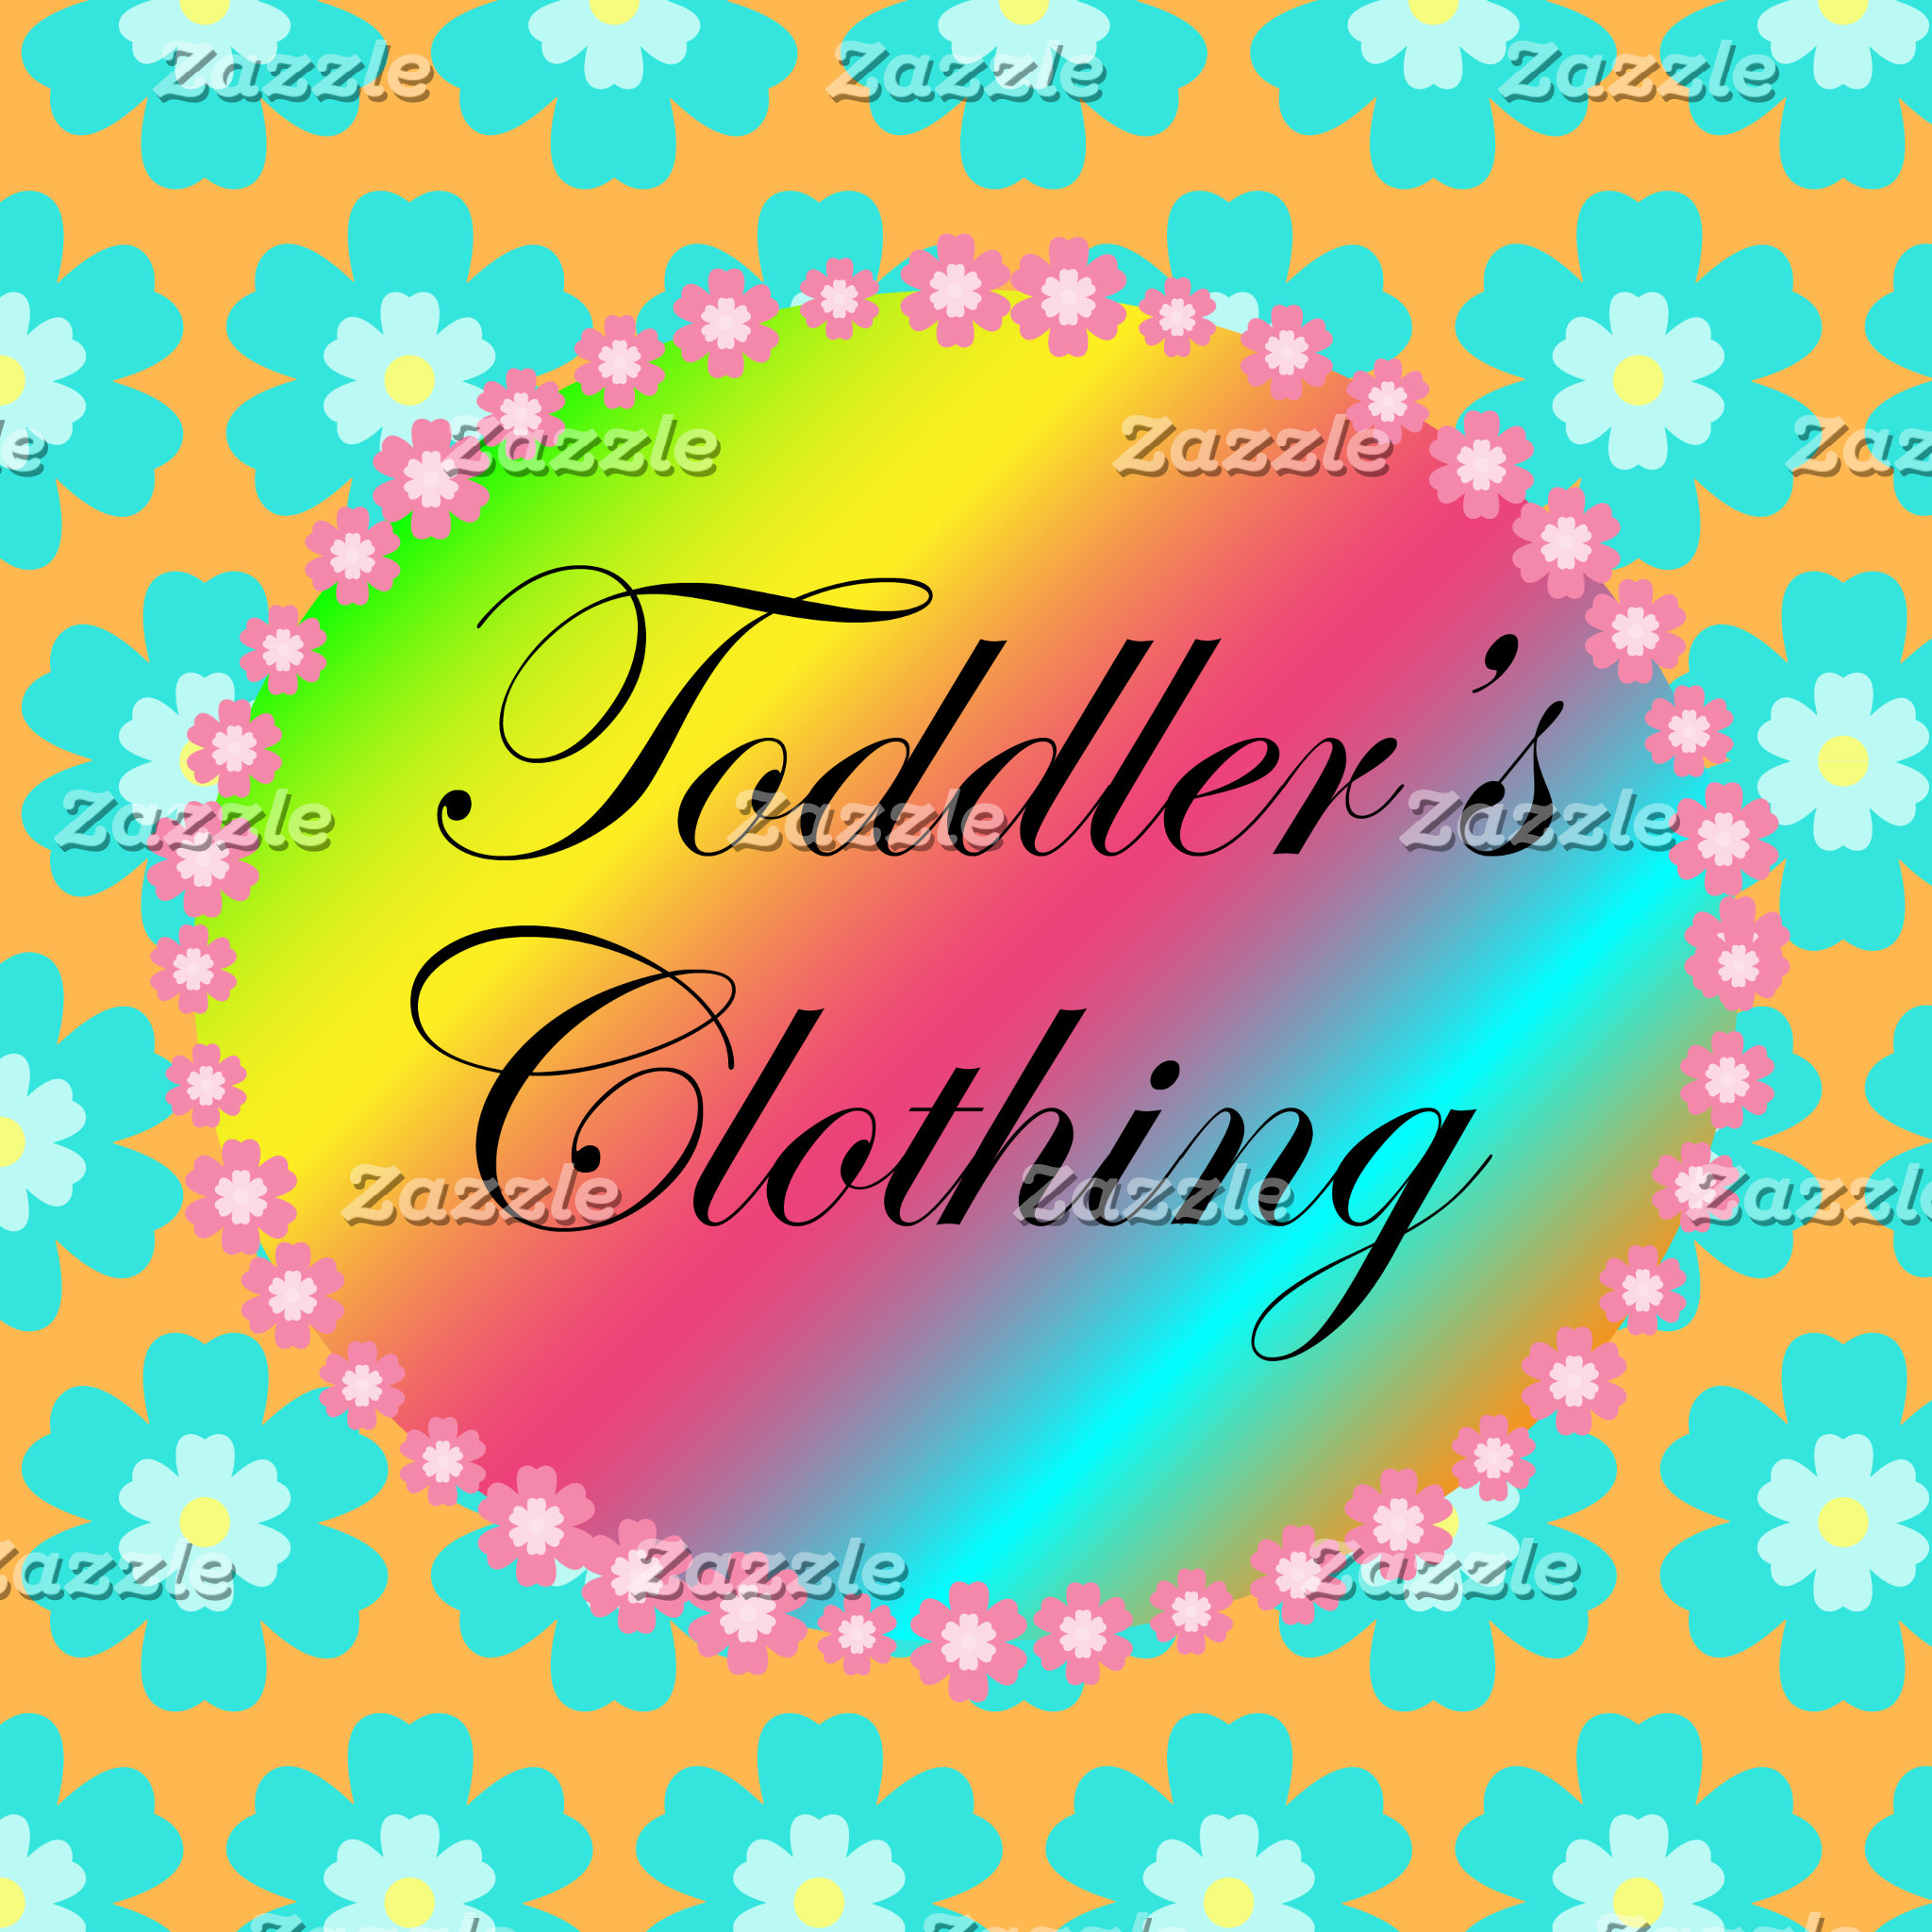 Toddler's Clothing